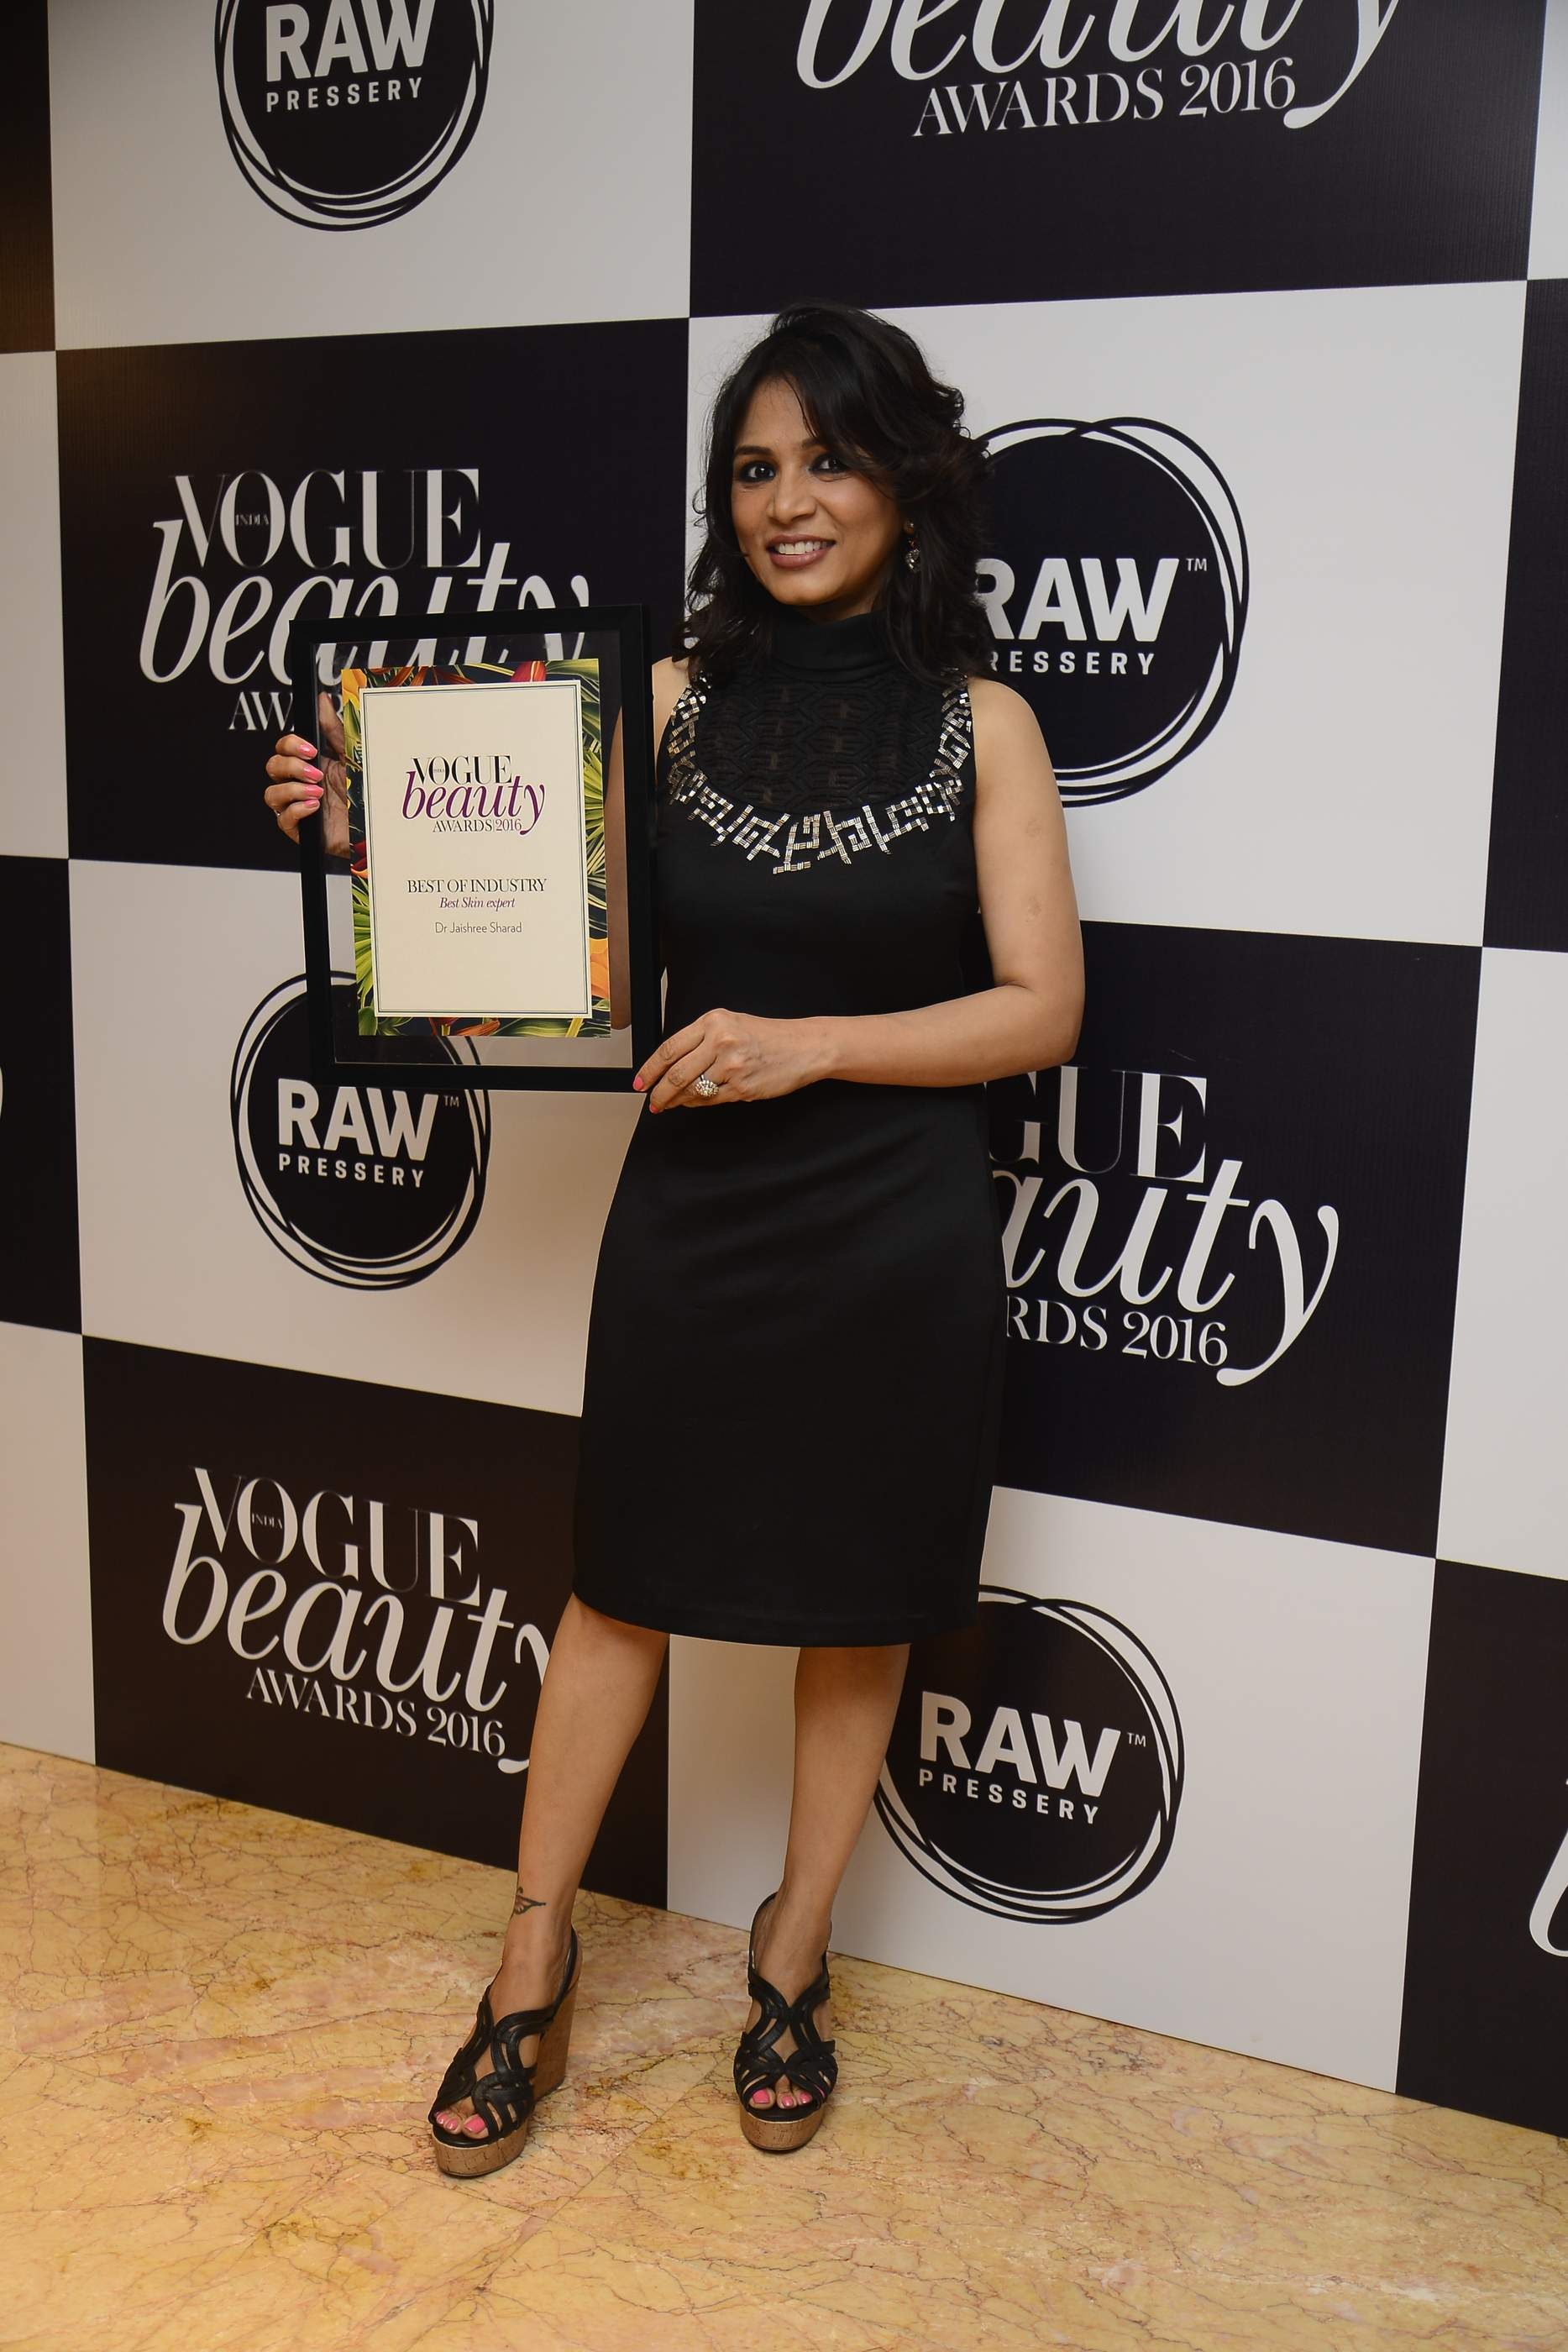 Dr. Jaishree Receiving The Best Skincare Expert Title at the Vogue Beauty Awards in 2016.